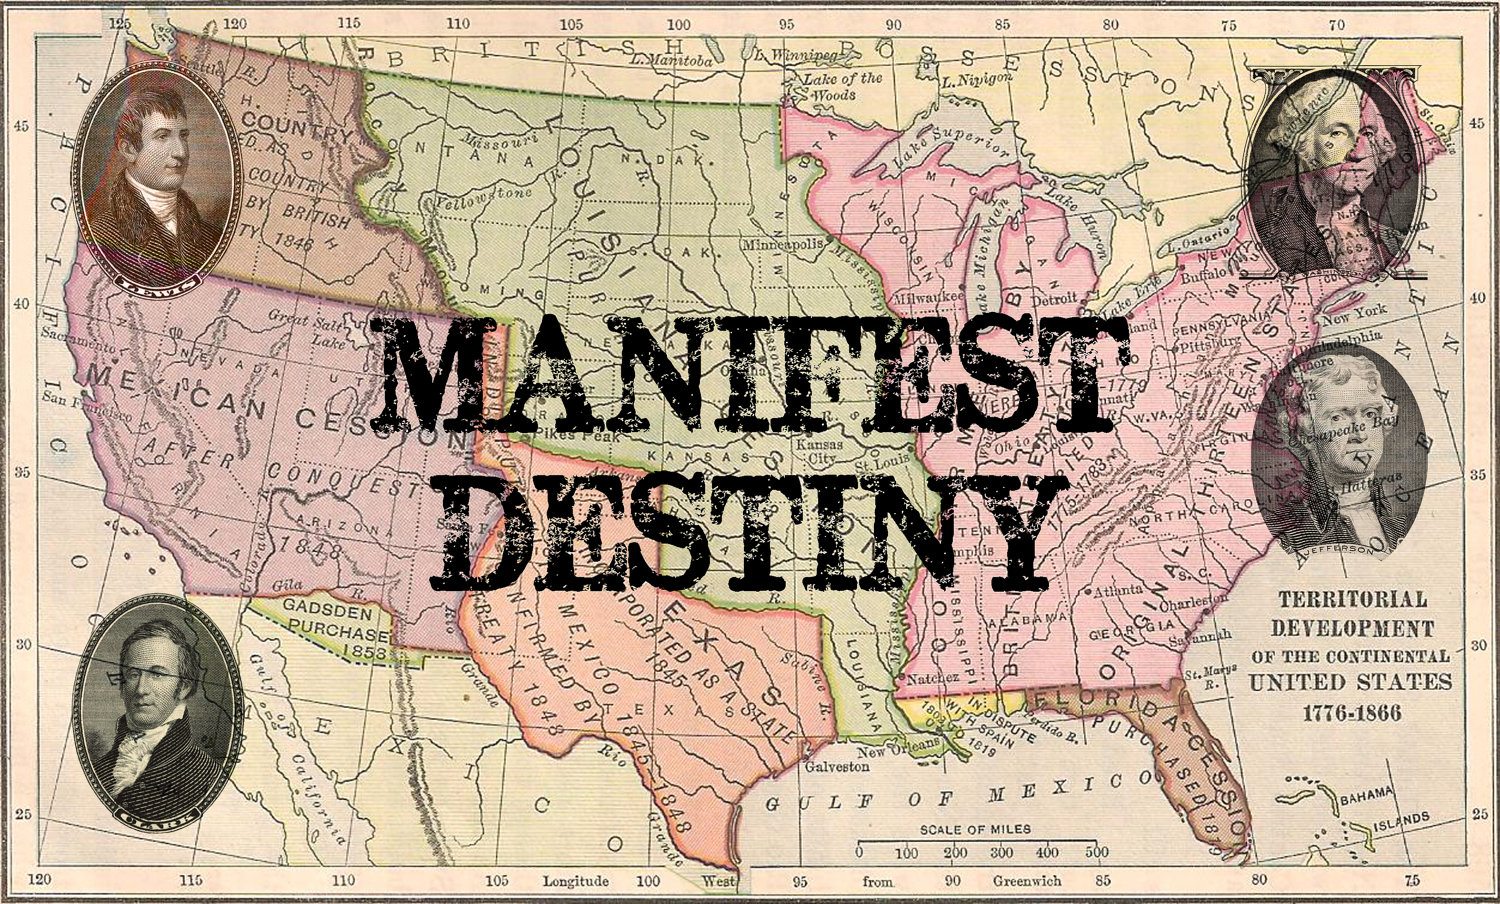 Manifest destiny and the dances with